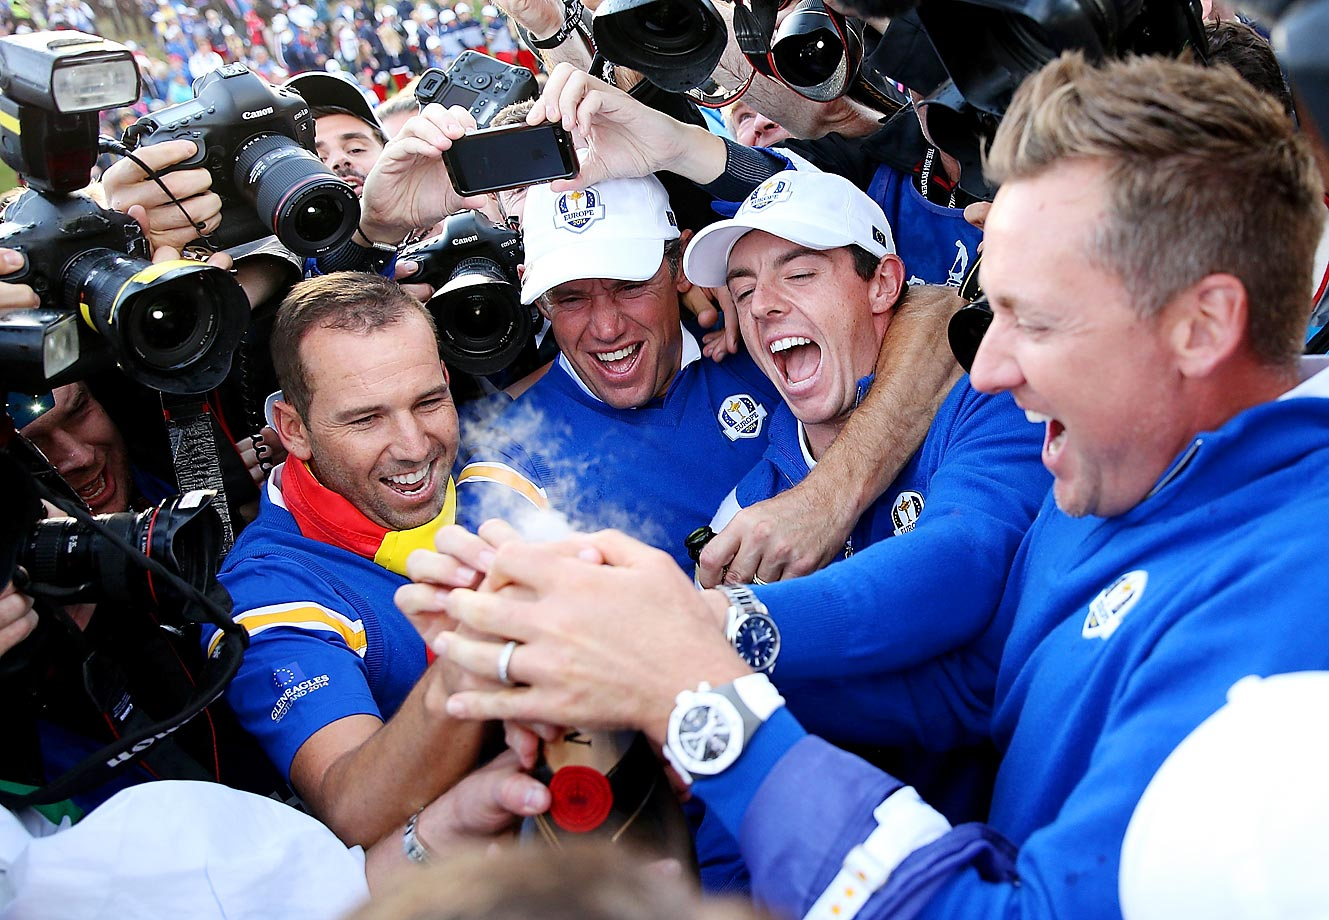 Sergio Garcia, Lee Westwood, Rory McIlroy and Ian Poulter of Europe celebrate their Ryder Cup win.